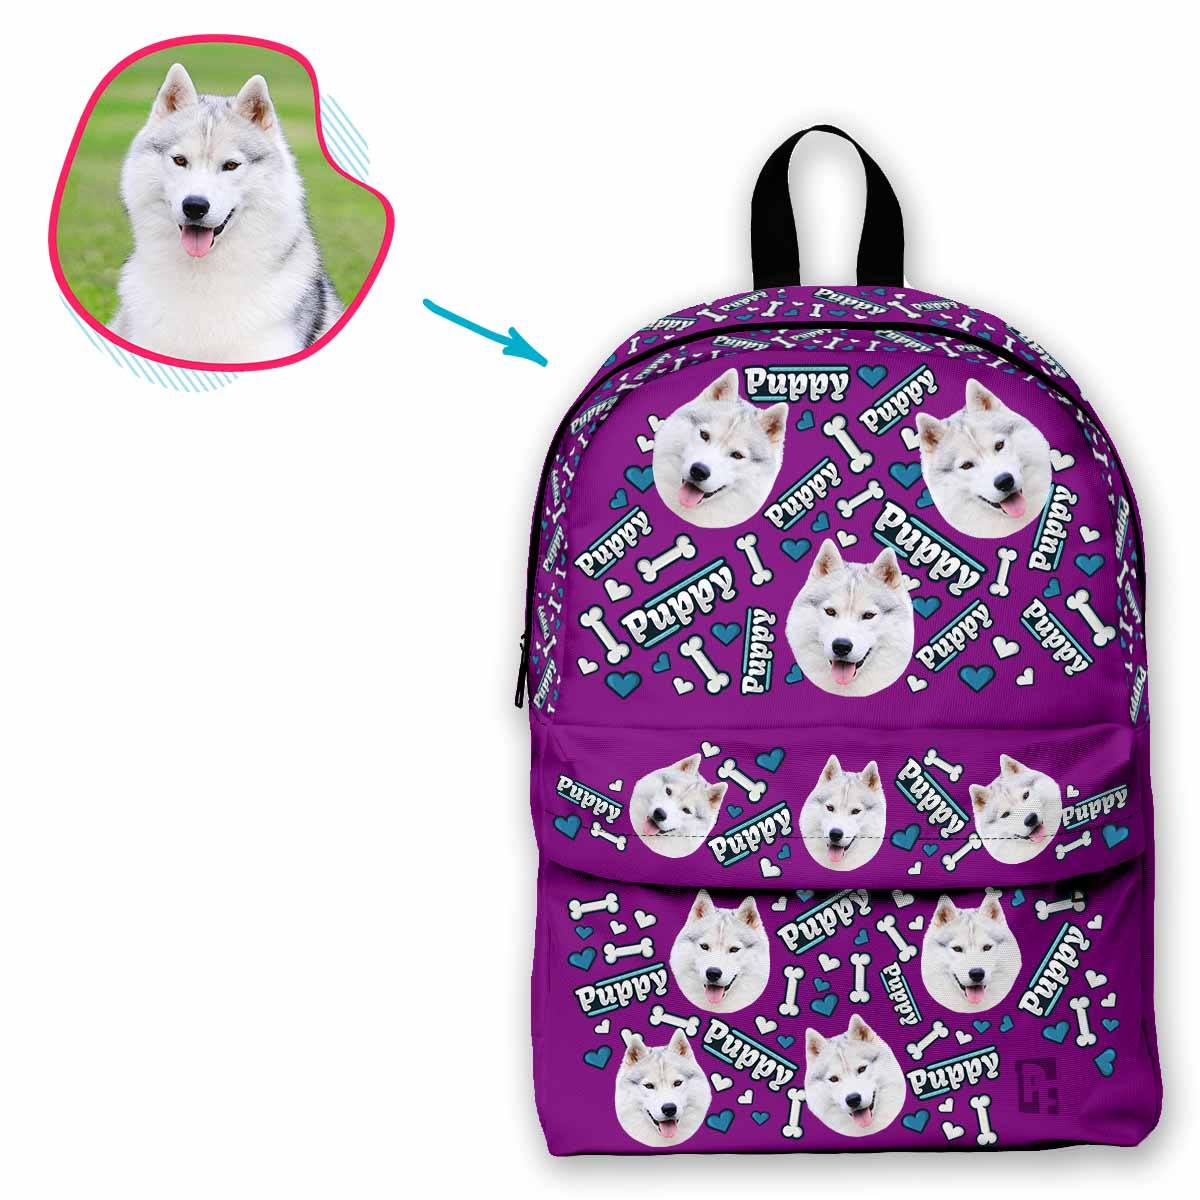 purple Puppy classic backpack personalized with photo of face printed on it